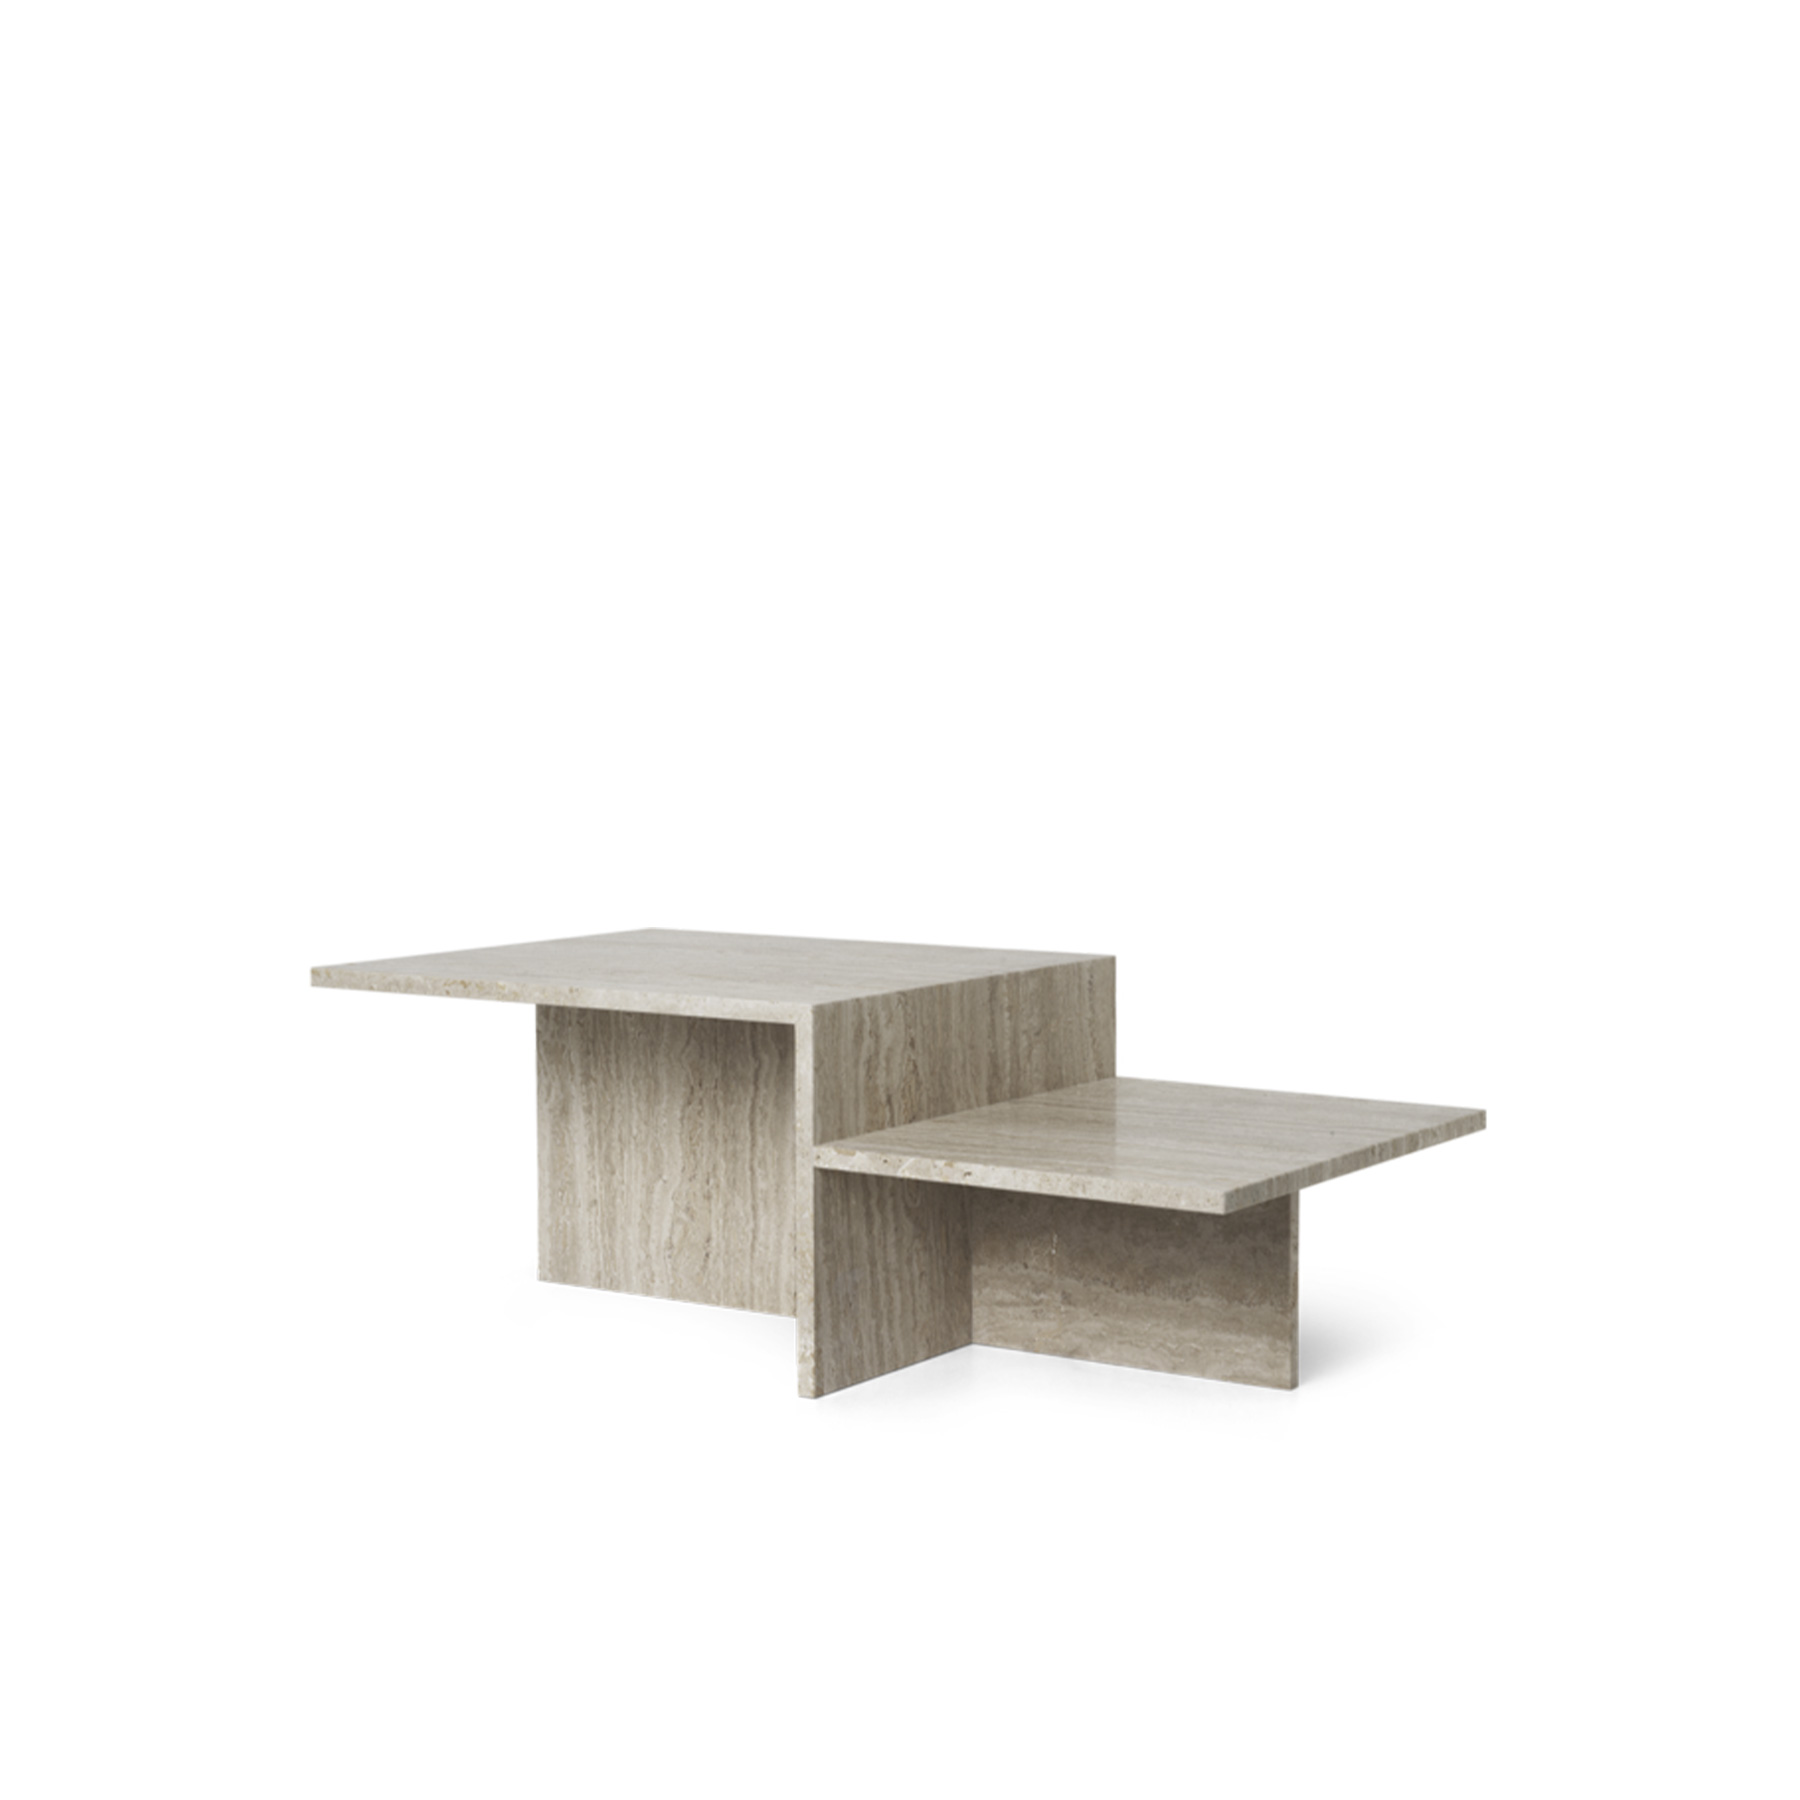 Distinct Coffee Table - Originally inspired by Japanese minimalism, the Distinct Coffee Table explores the creation of complex structures based on a single element. The minimalist construction creates a contrast to the richness of the travertine's earthy textures. With the natural and diverse qualities of the sand-coloured limestone, it provides rawness and tangibility that highlight the architectural character of the furniture piece.  | Matter of Stuff